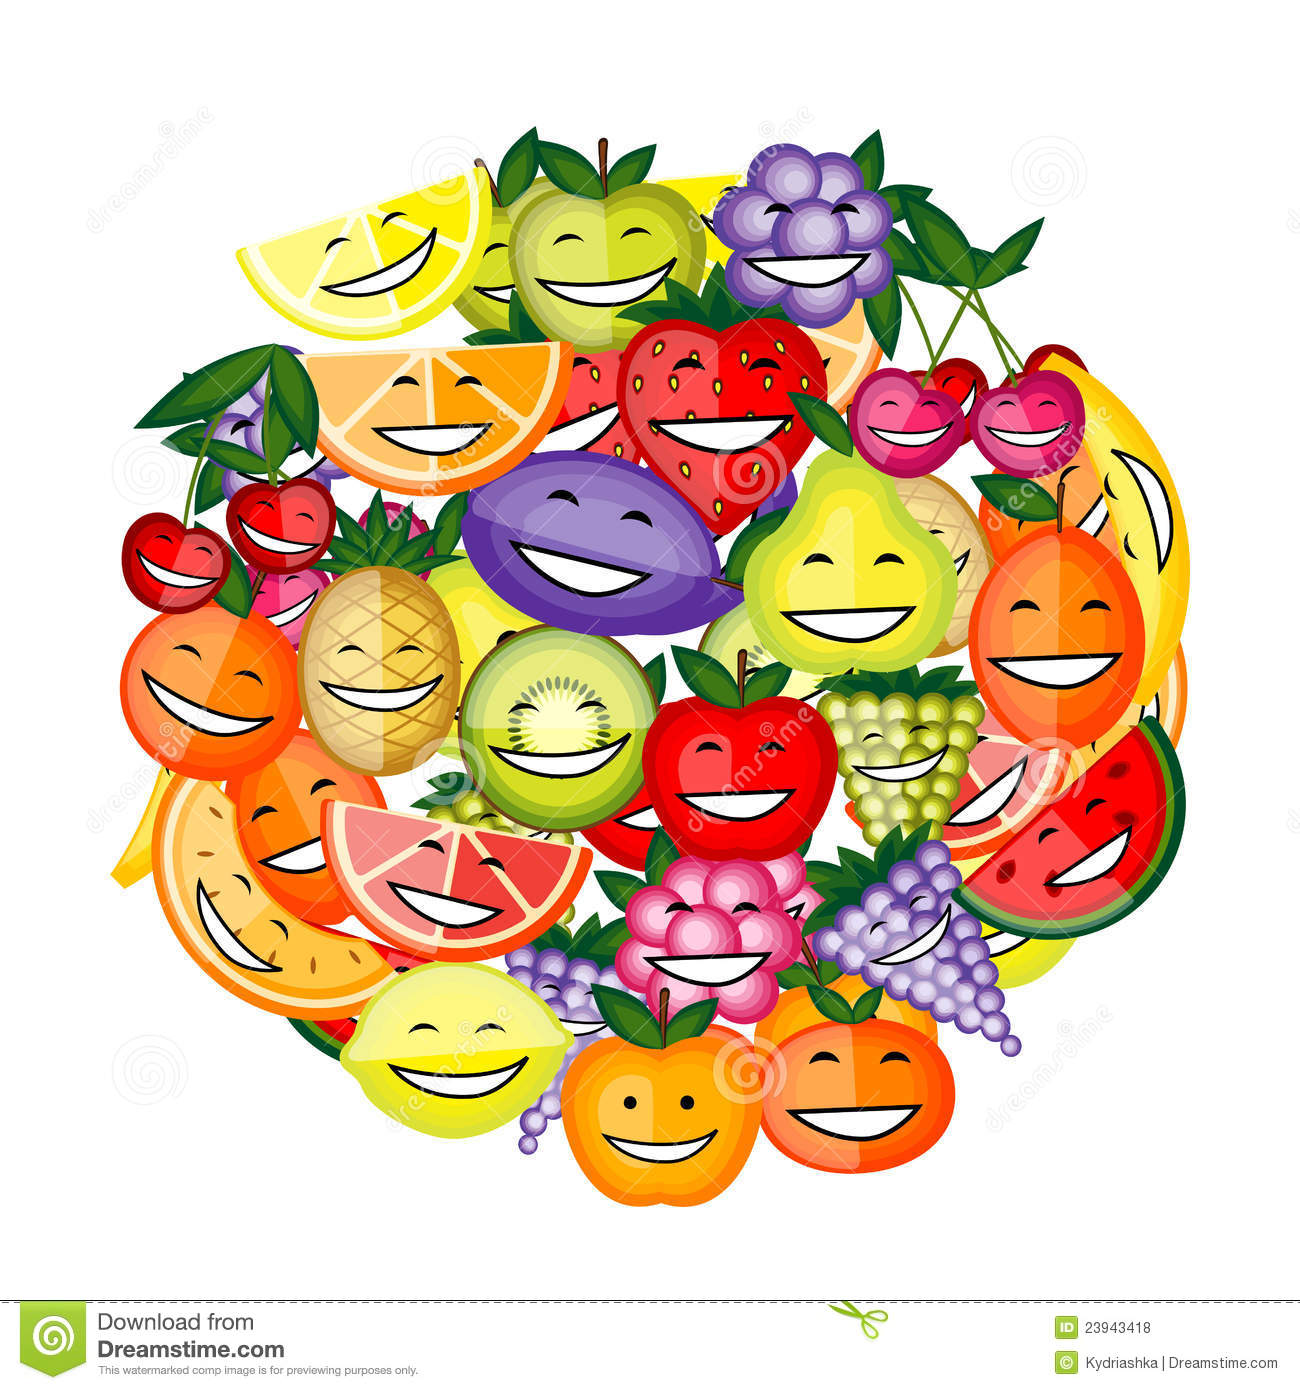 Cartoon Characters Mixed Together : Funny fruit characters smiling together royalty free stock